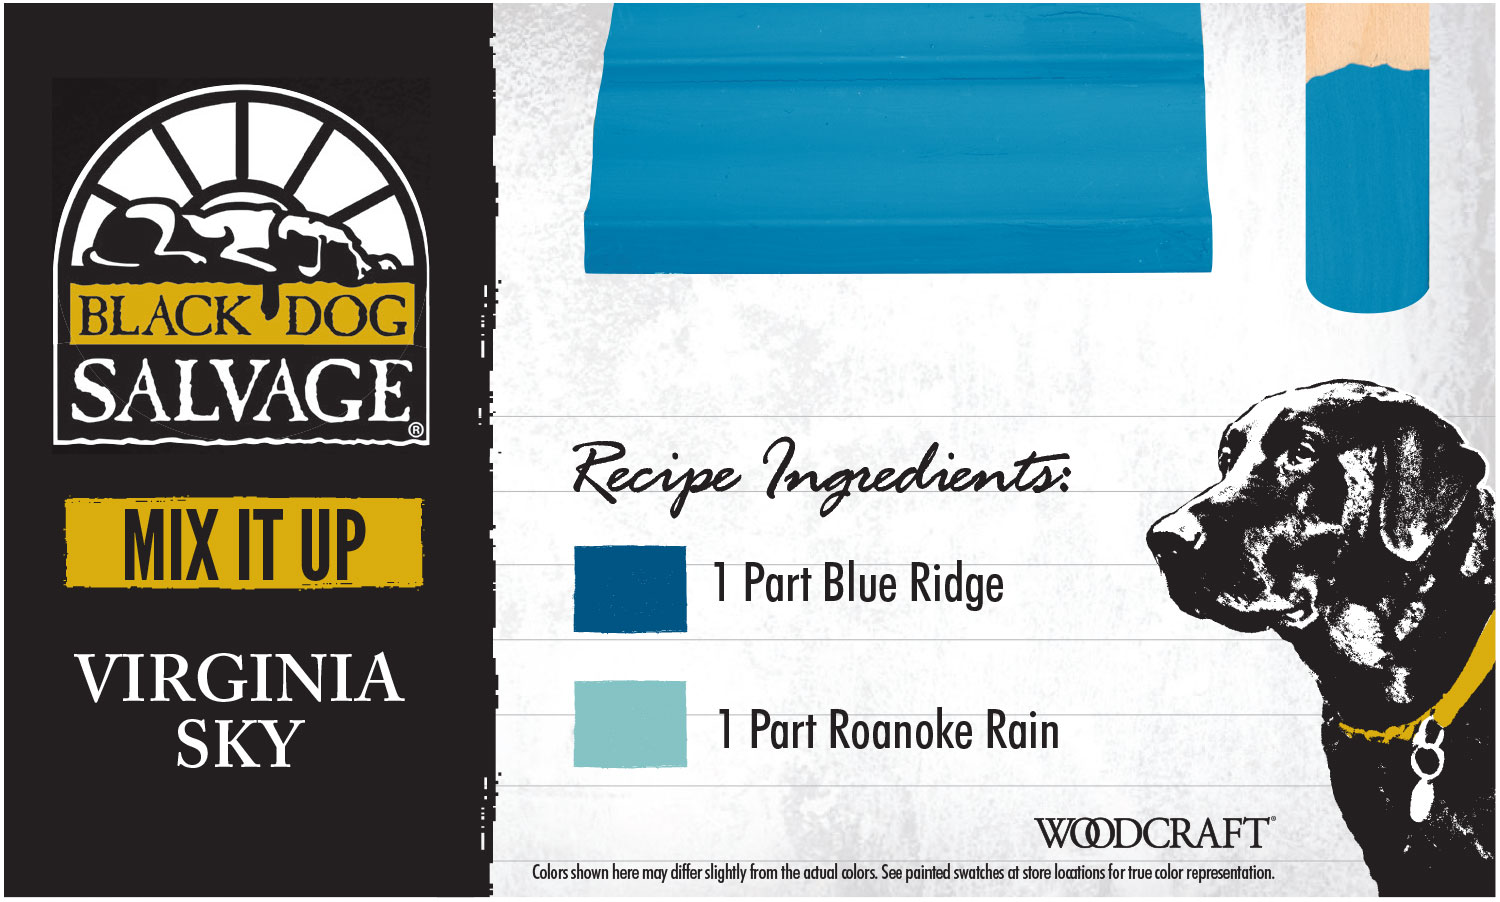 """""""Virginia Sky"""" is made from1 Part """"Blue Ridge"""" and 1 Part """"Roanoke Rain"""""""